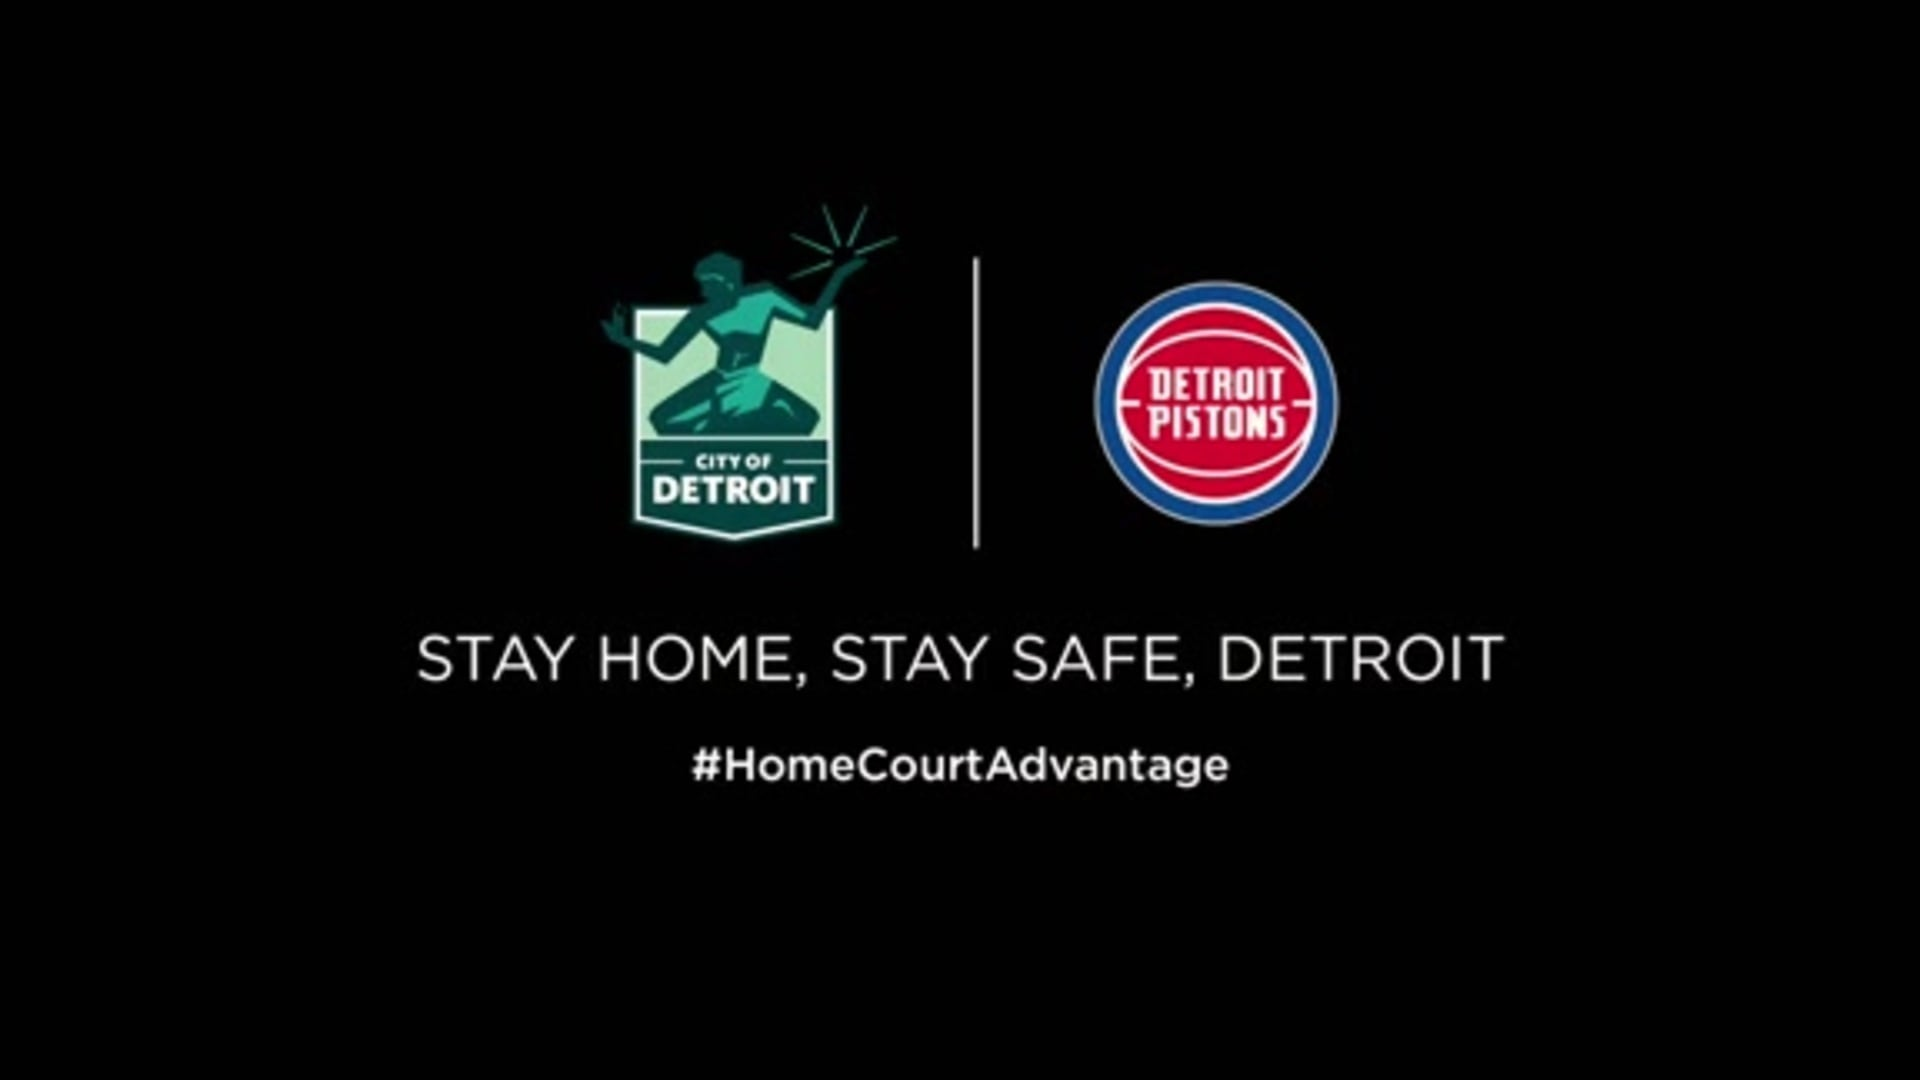 PSA from the Pistons and the City of Detroit